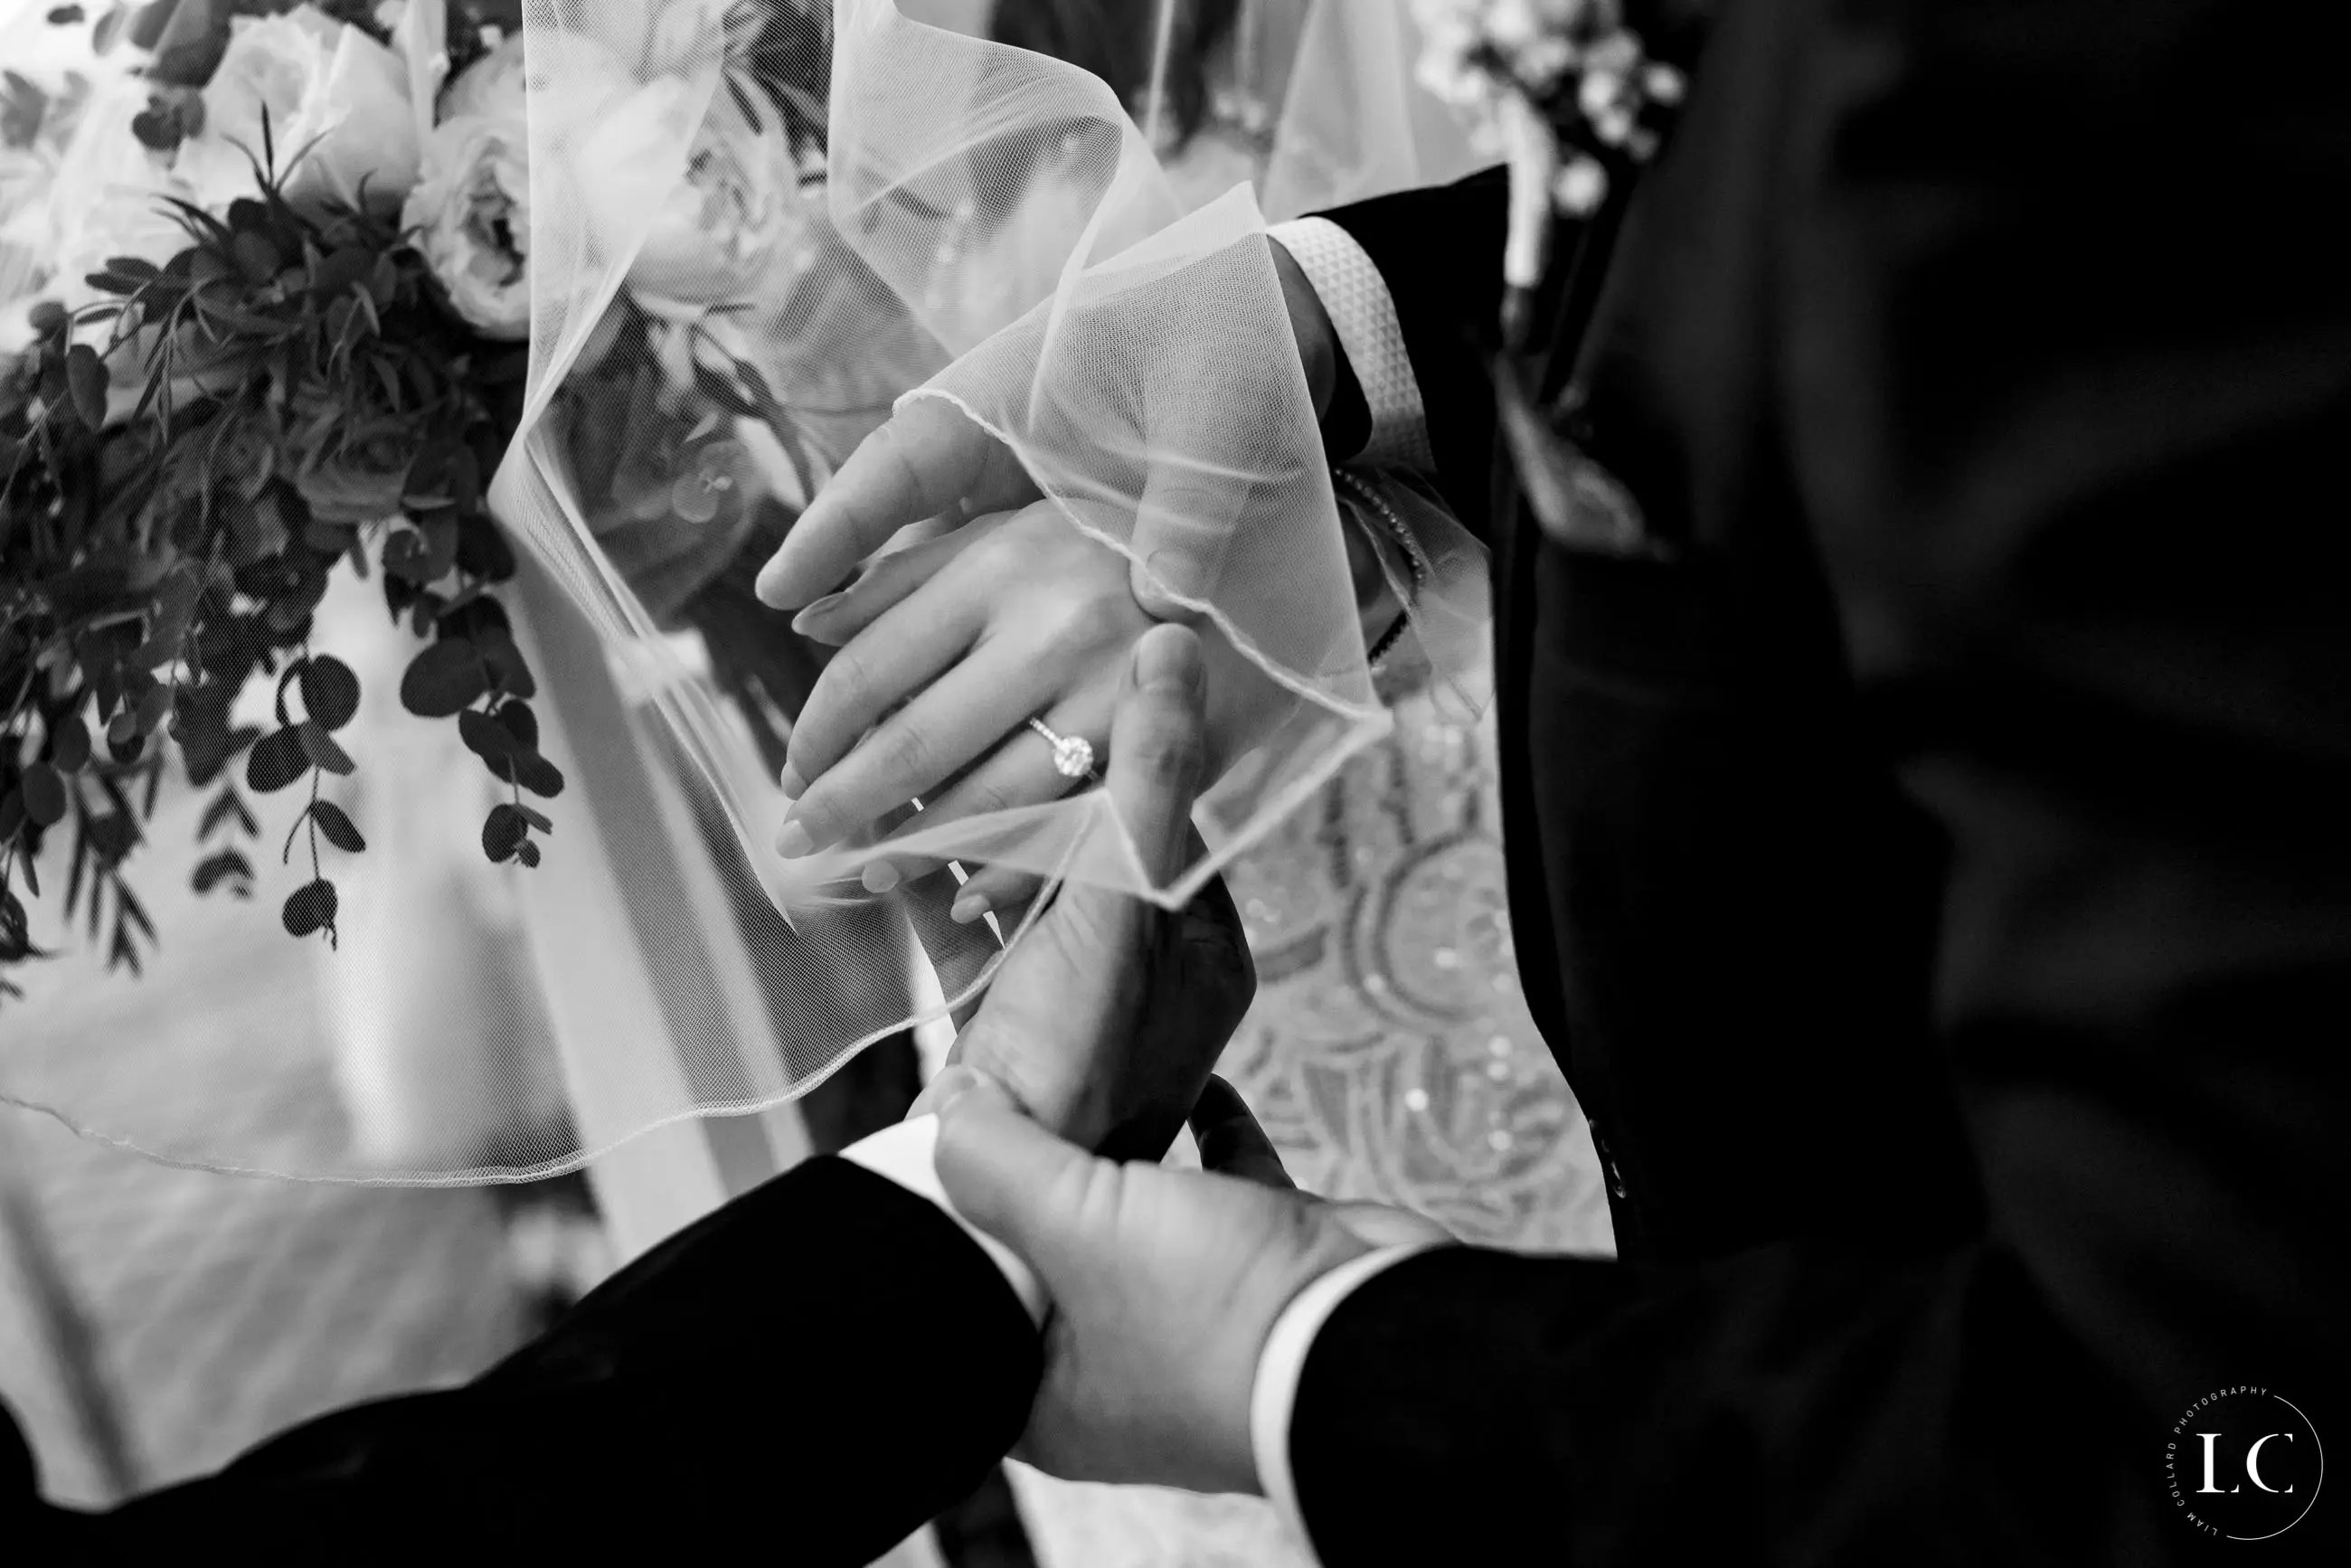 Close up of bride and groom's hands